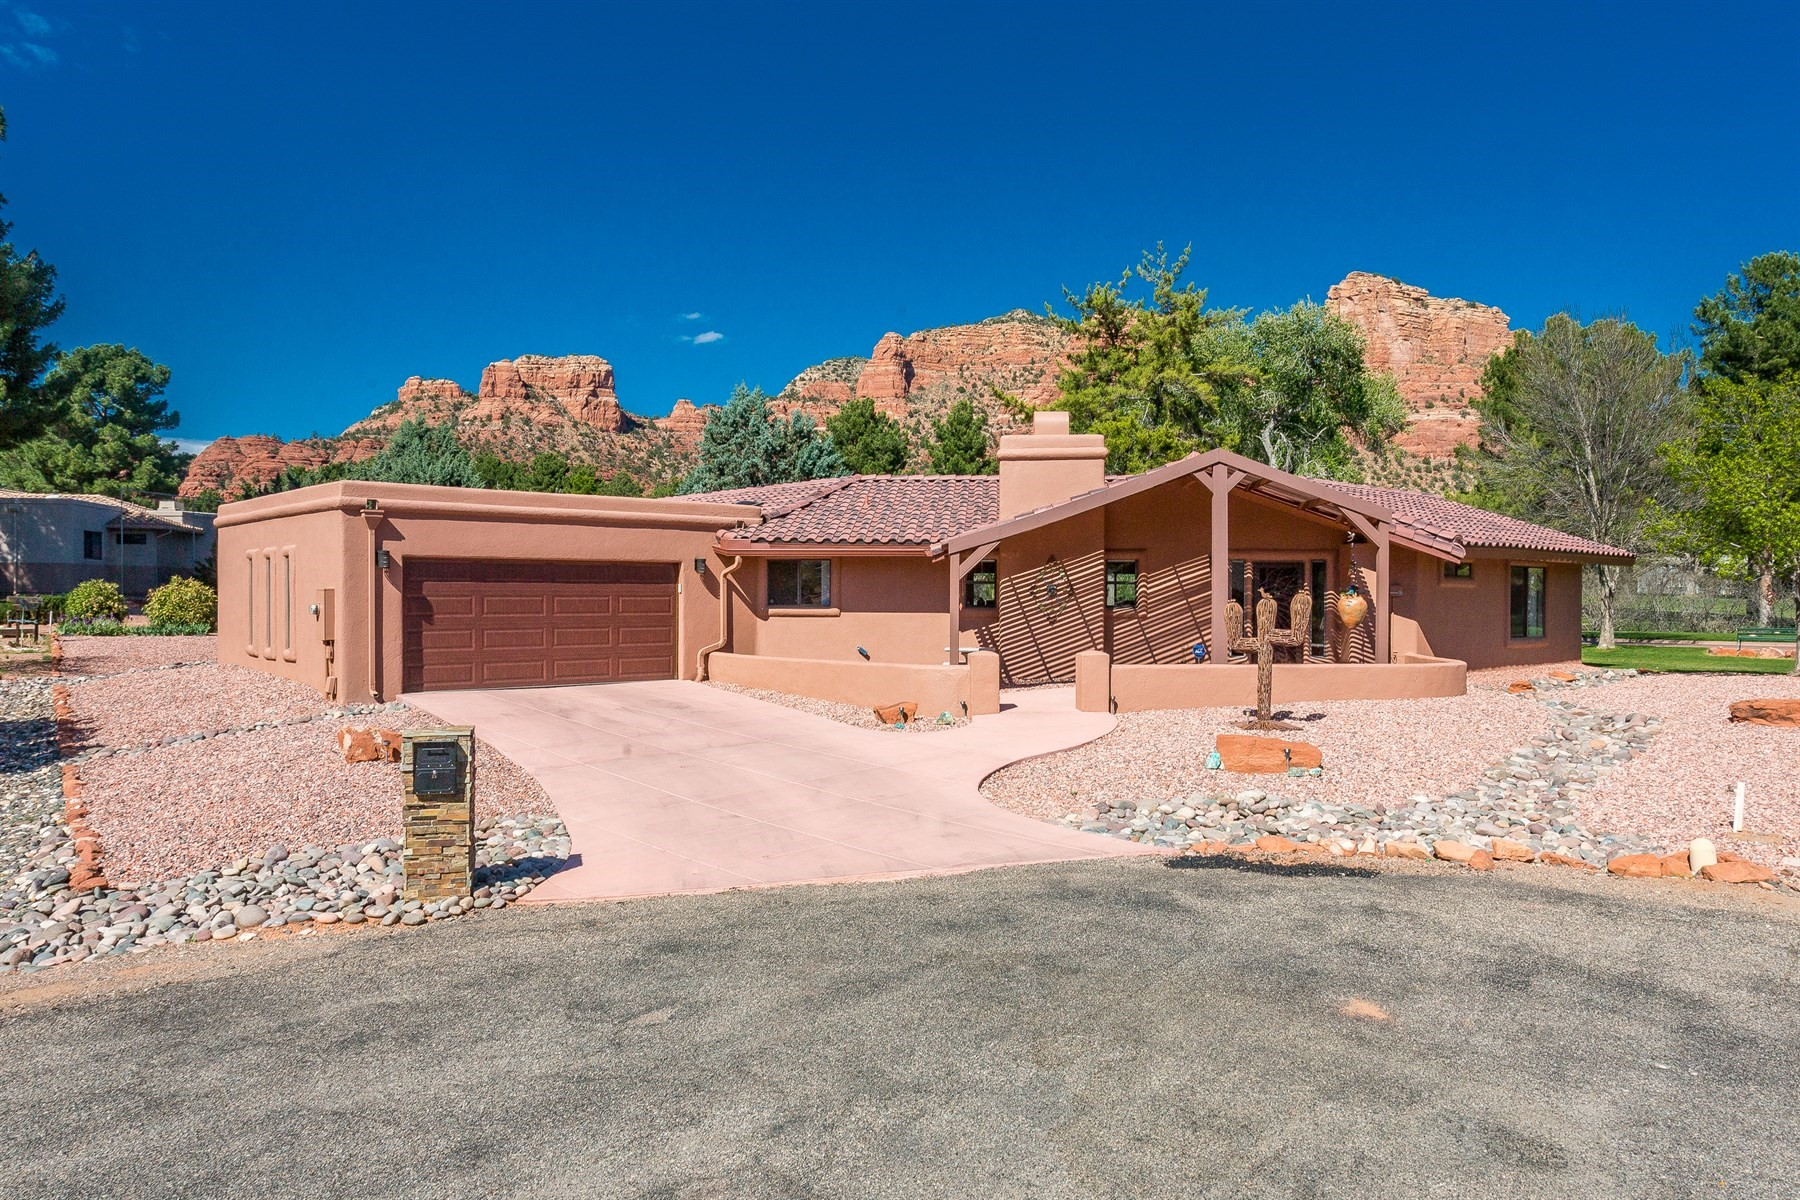 Single Family Home for Sale at Charming home with unobstructed views 35 Vaquero Circle Sedona, Arizona, 86351 United States